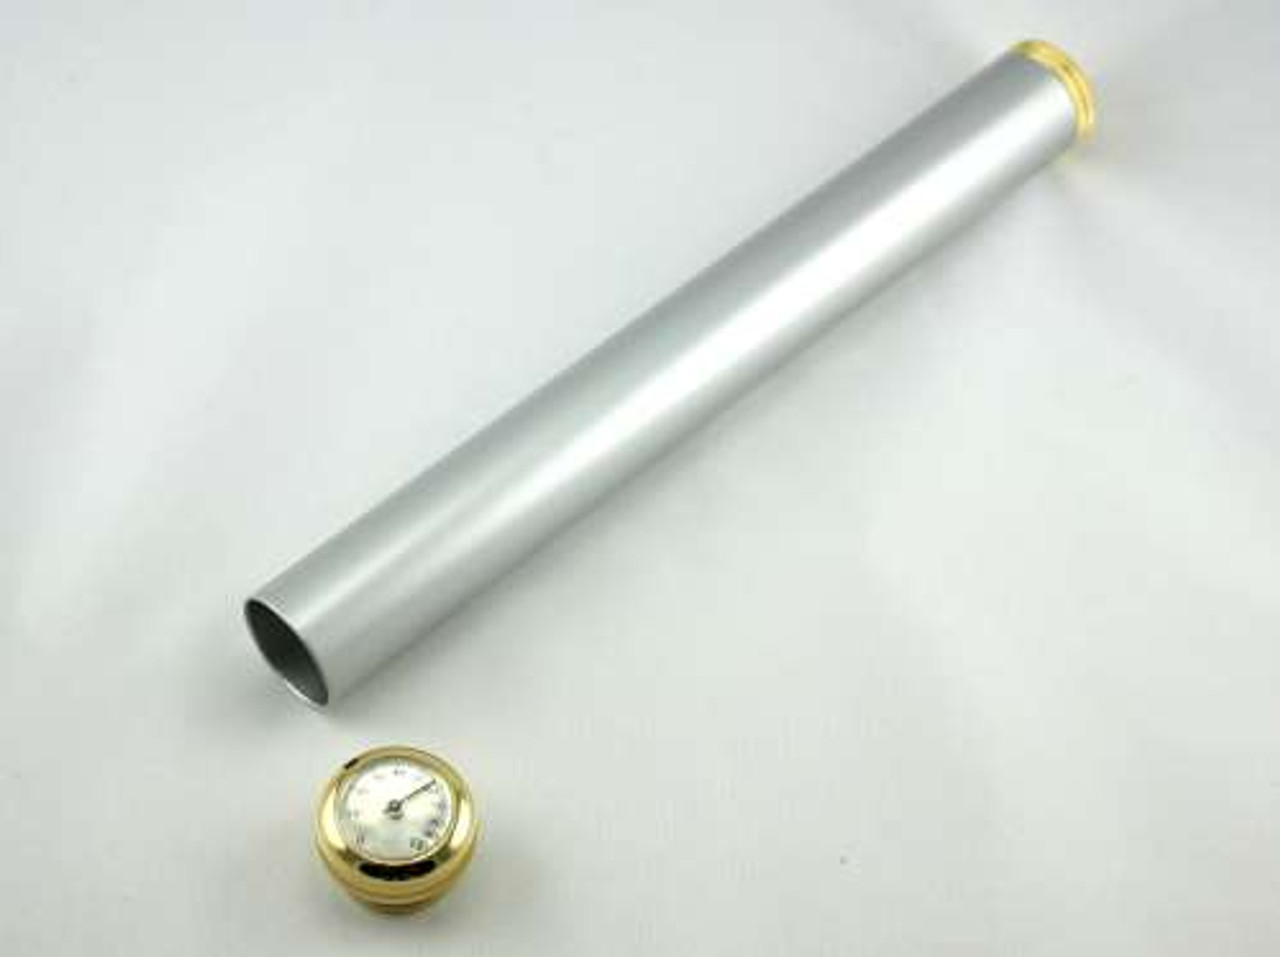 Silver Century Cigar Tube with Hygrometer and Humidifier